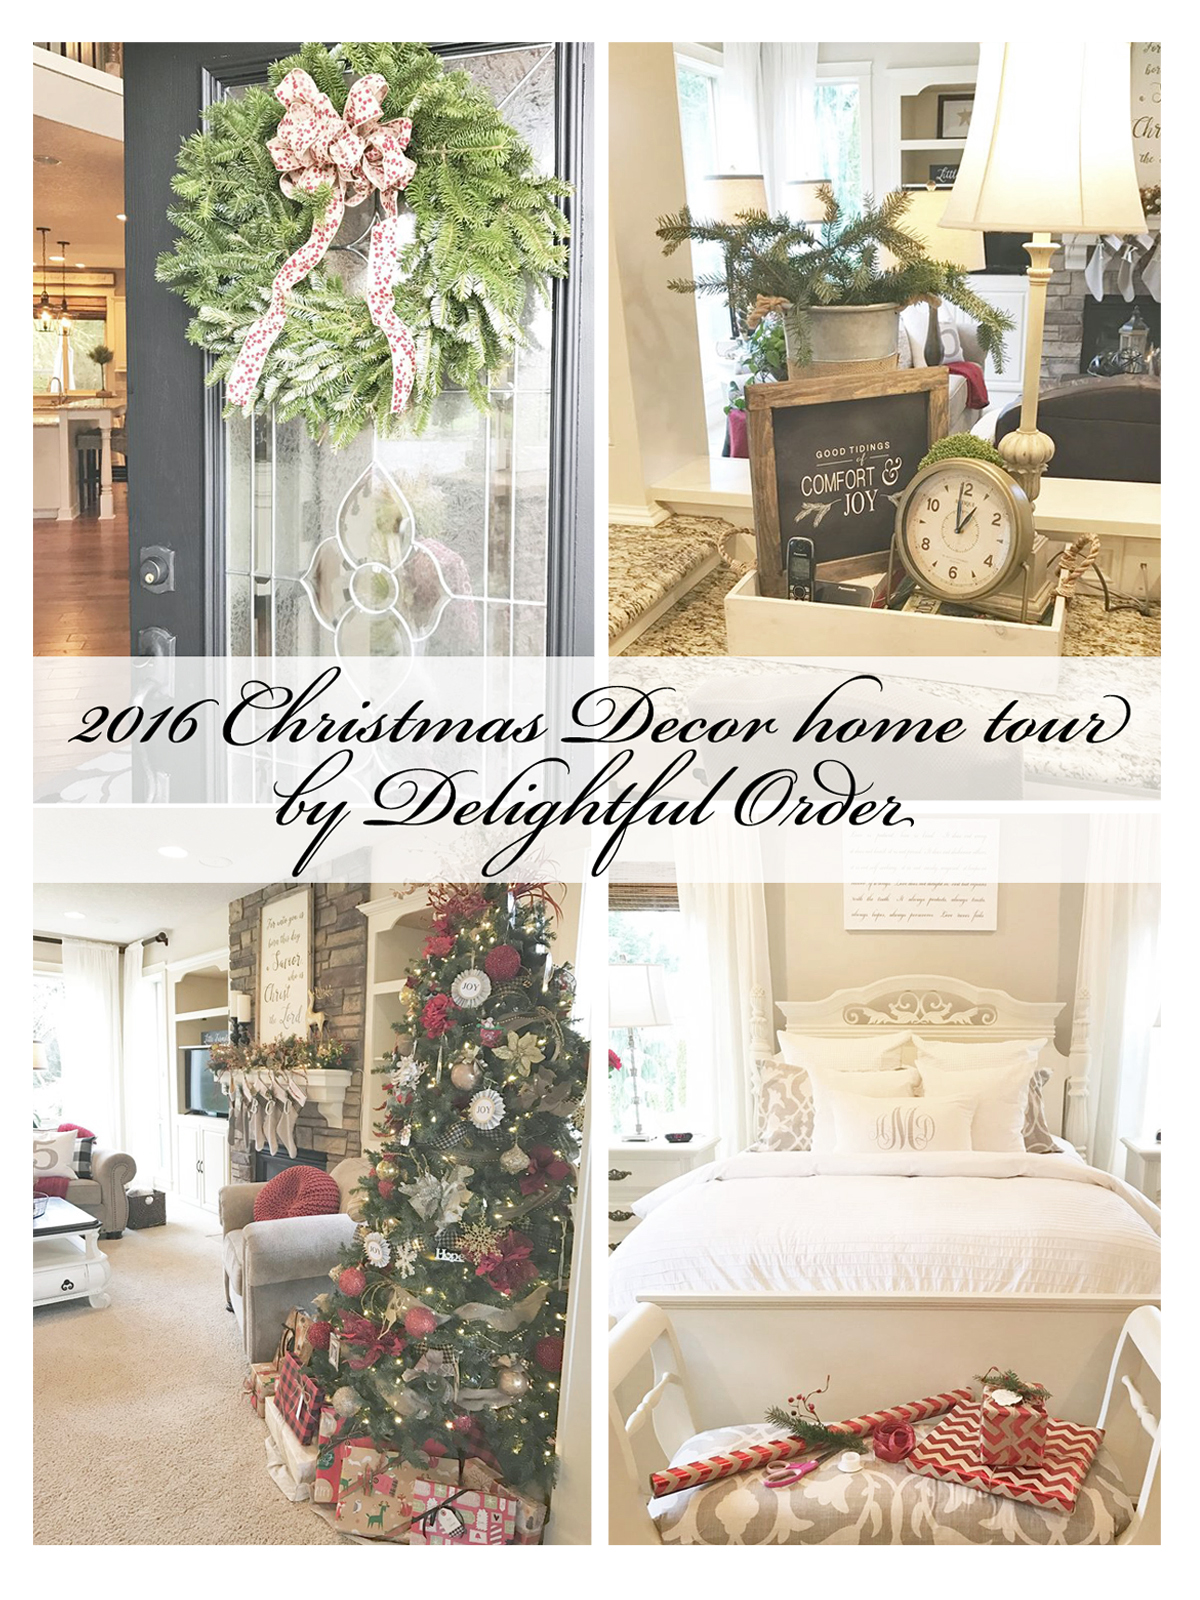 delightful order my 2016 christmas decor home tour merry christmas from our home to yours